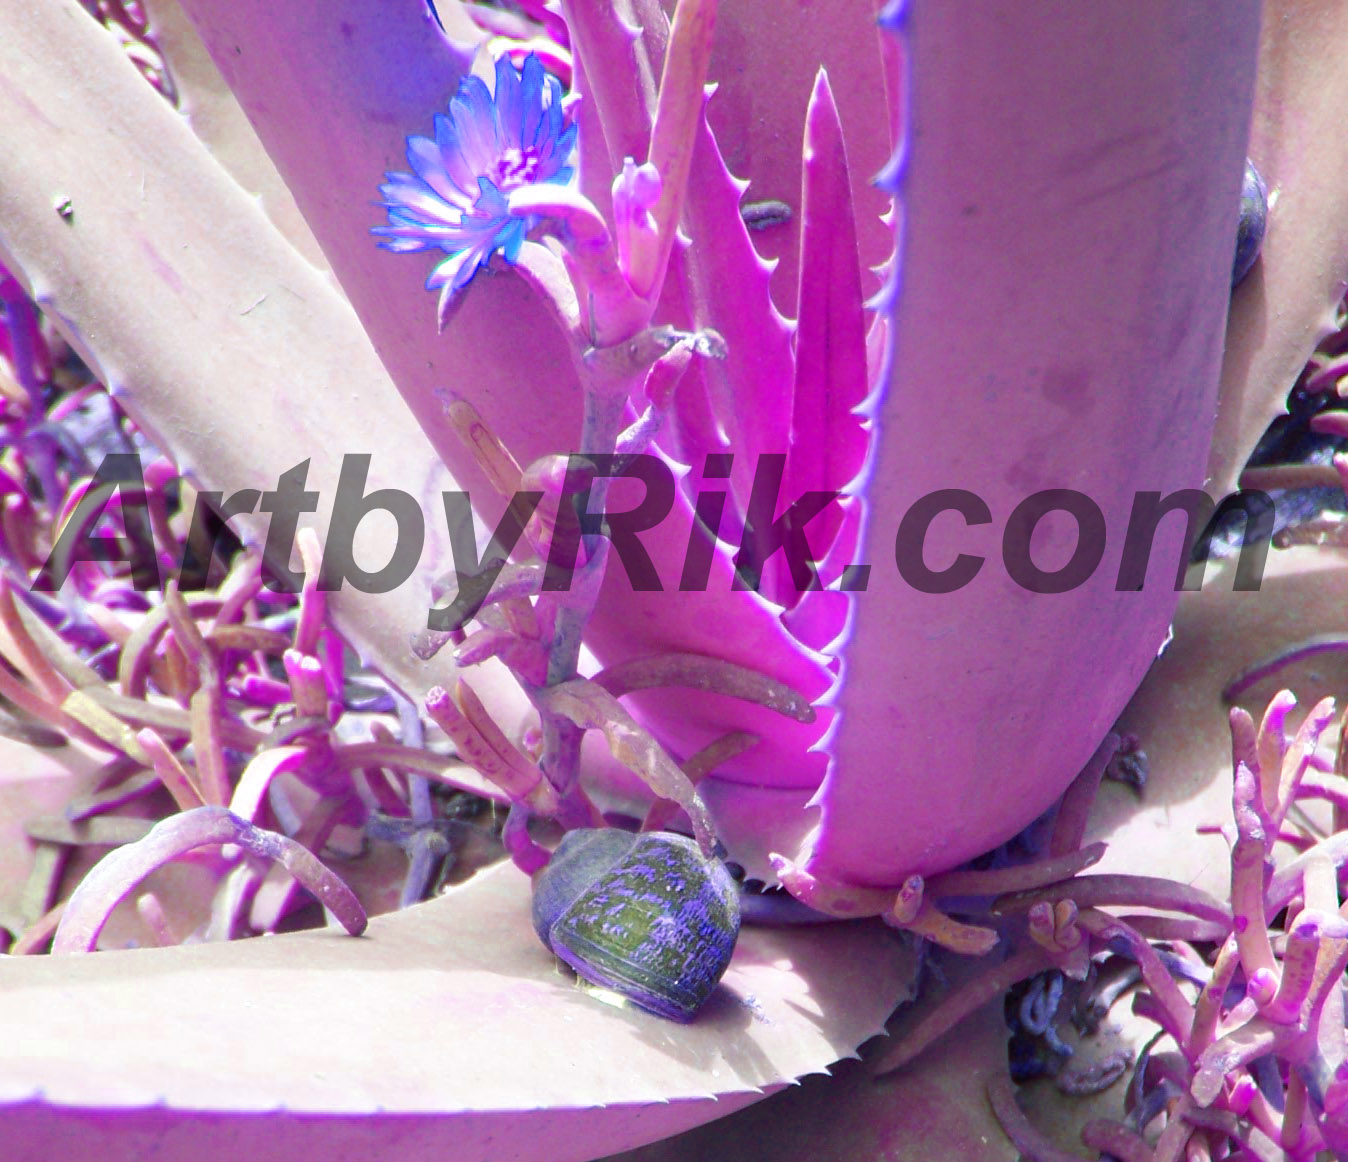 Purple cactus art with snail